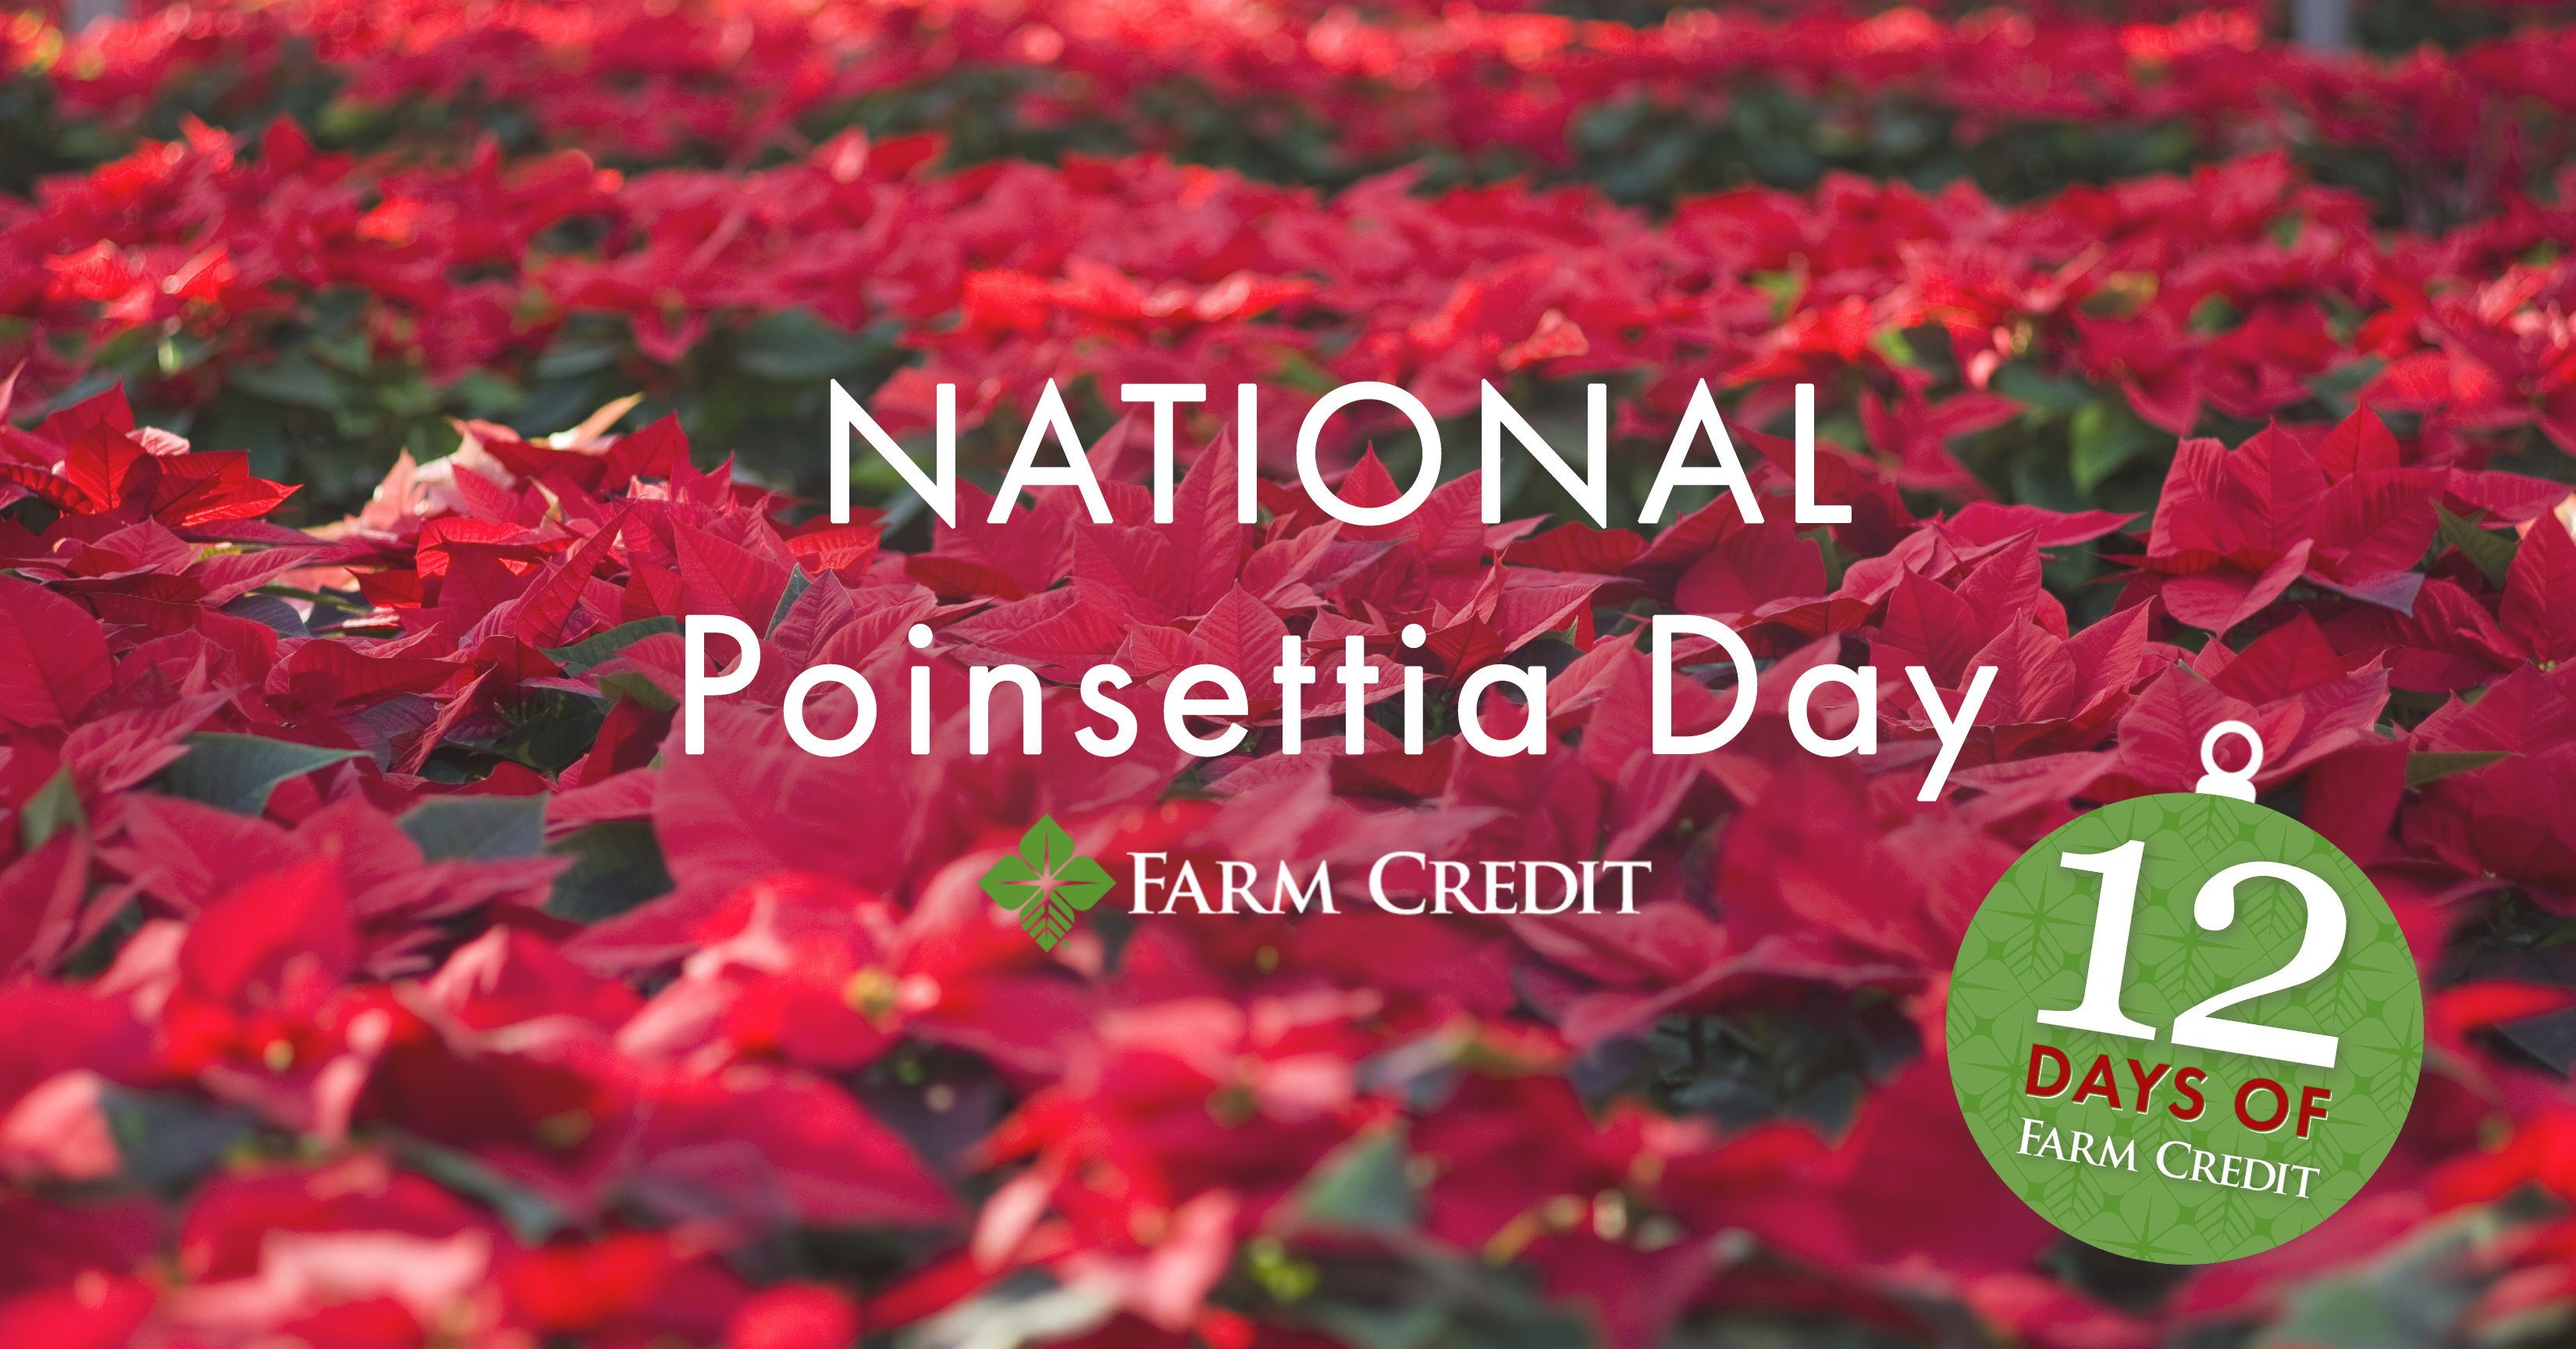 poinsettia's in nursery graphic text on screen national poinsettia month